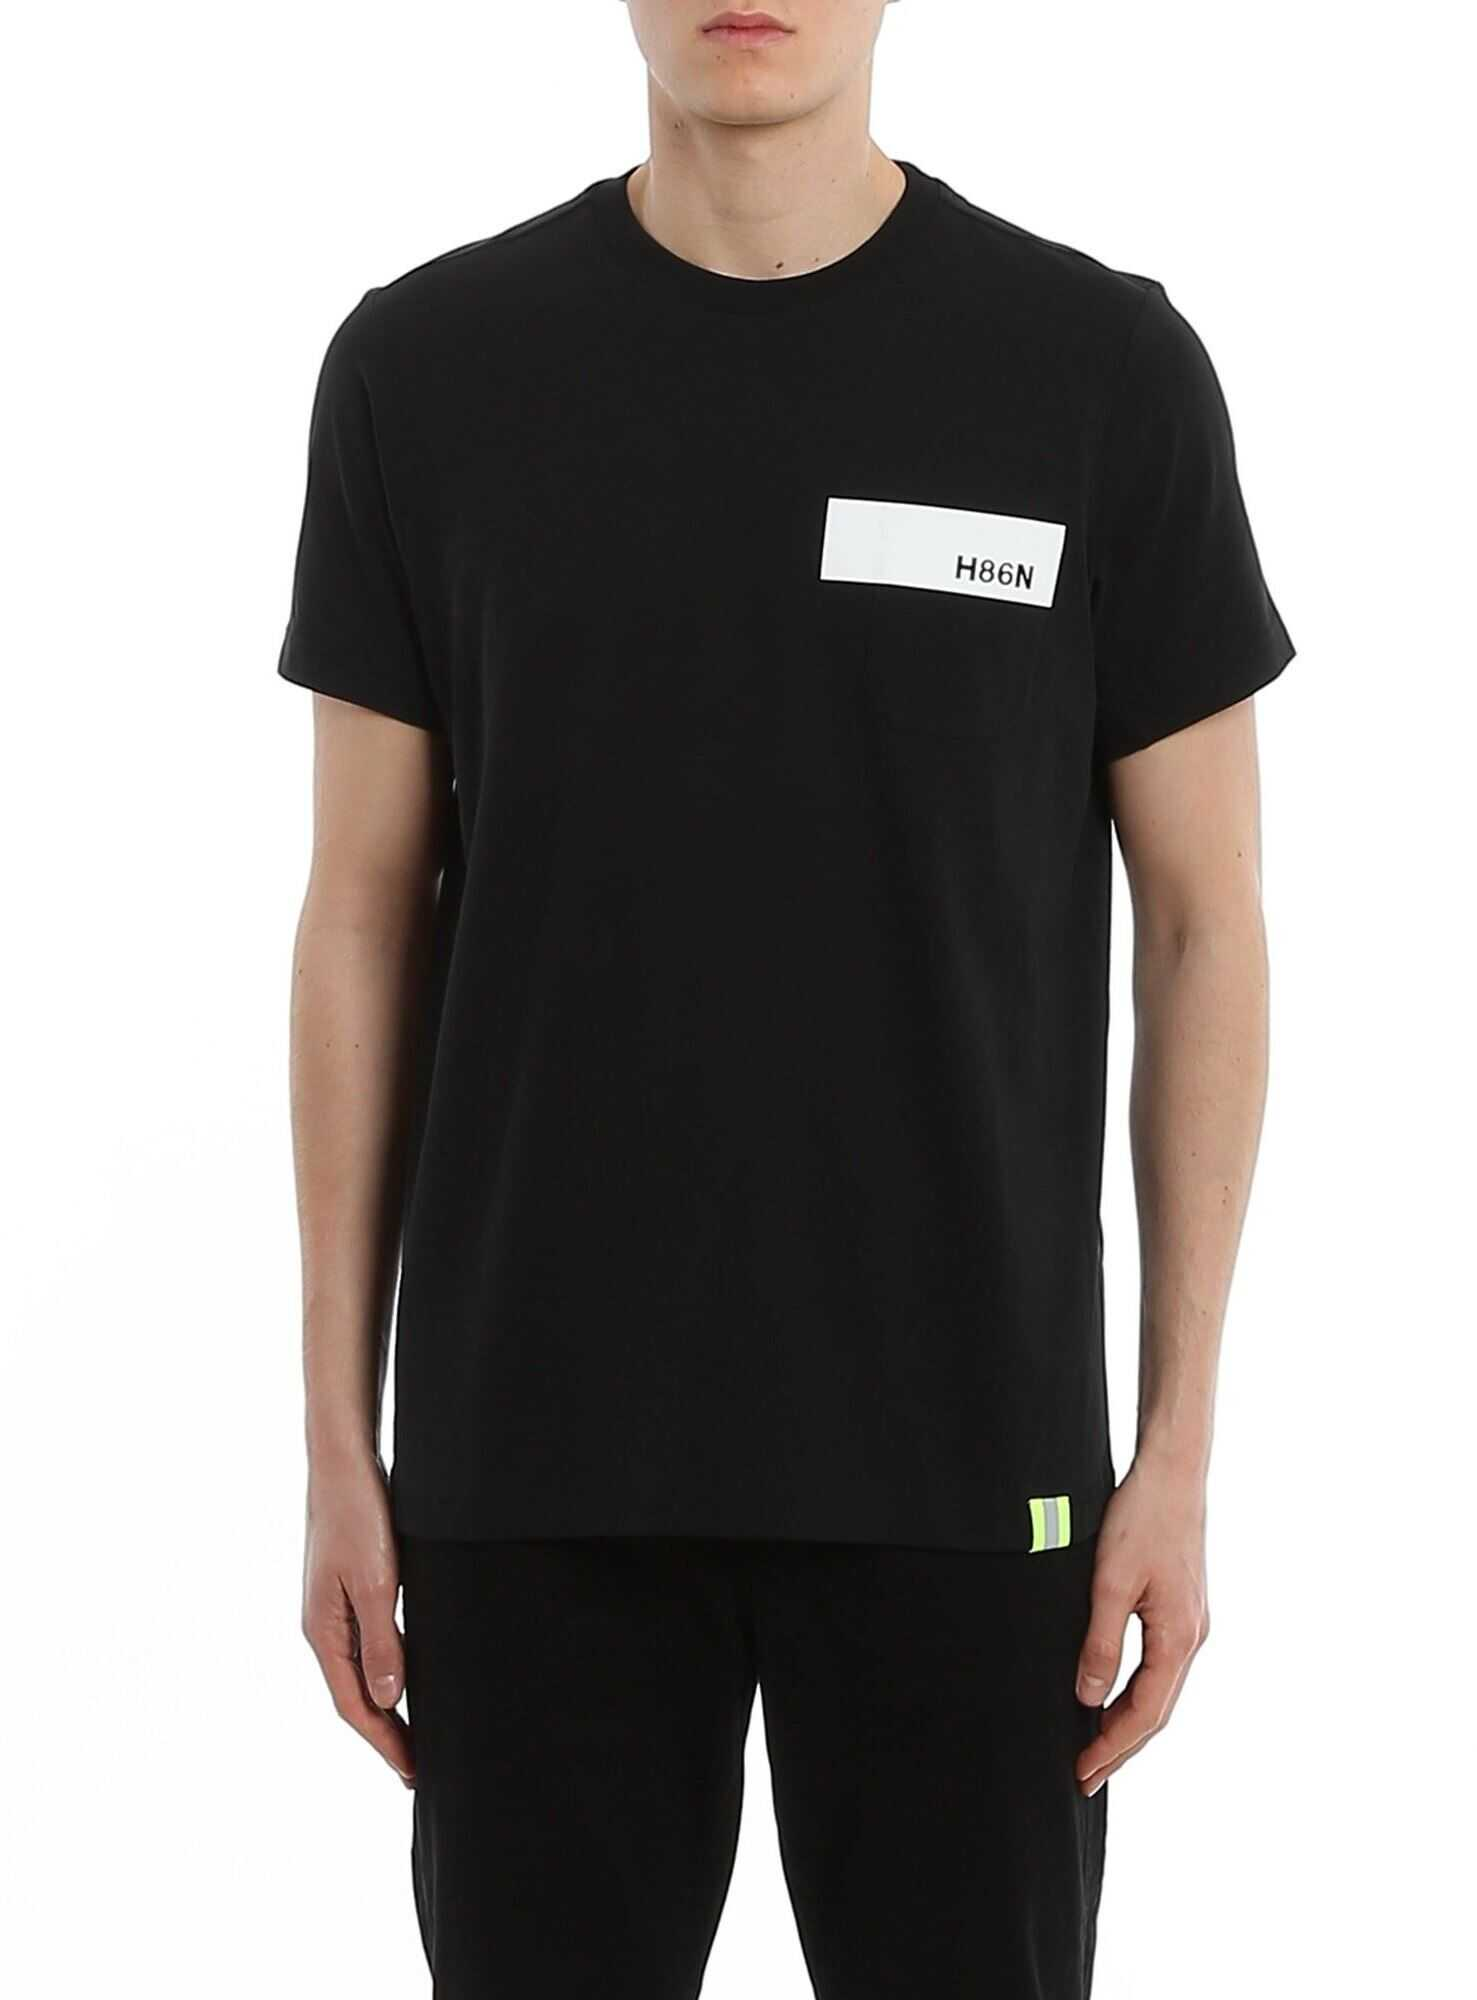 Hogan H86N Print Cotton T-Shirt Black